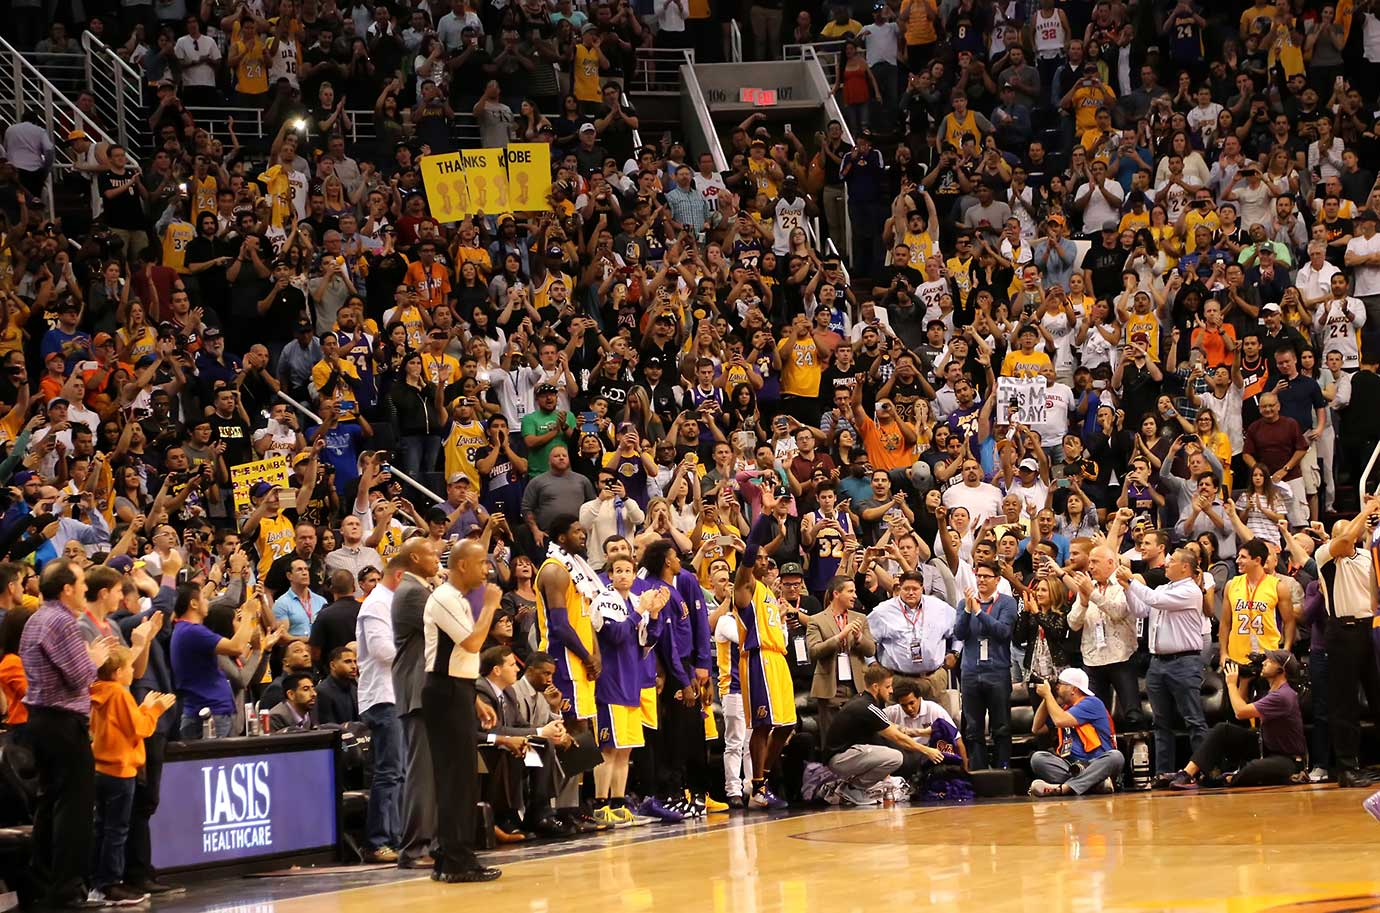 The fans give Kobe Bryant a standing ovation in his last visit to their arena.